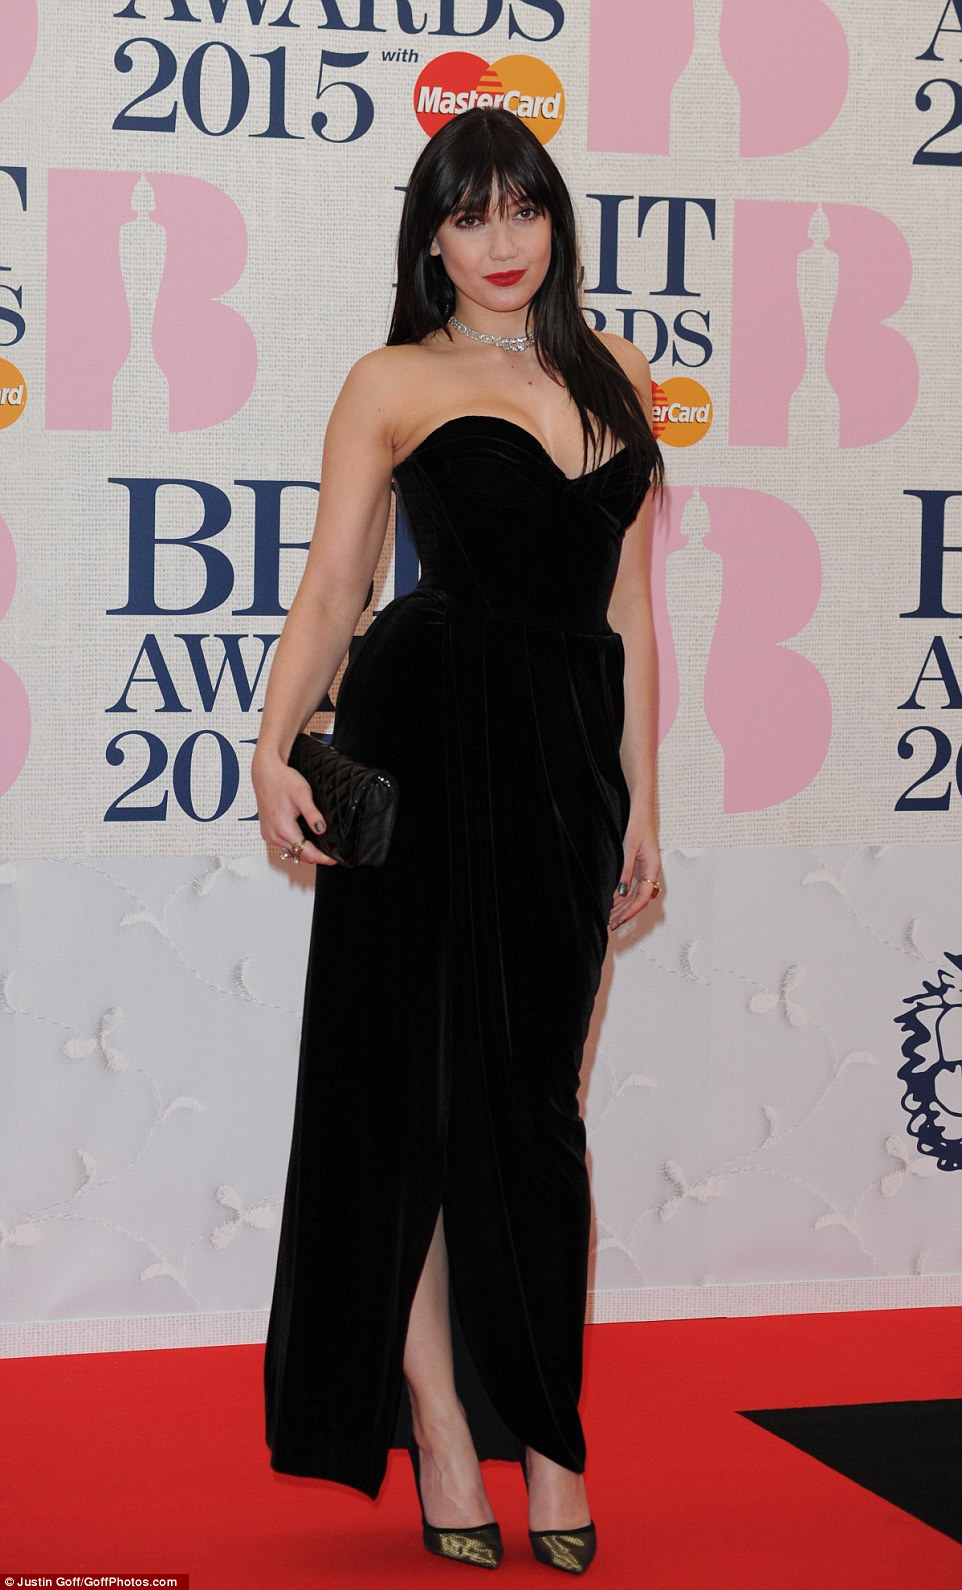 Model behaviour: Daisy Lowe looked beyond stunning in a black strapless gown after a week of non-stop partying